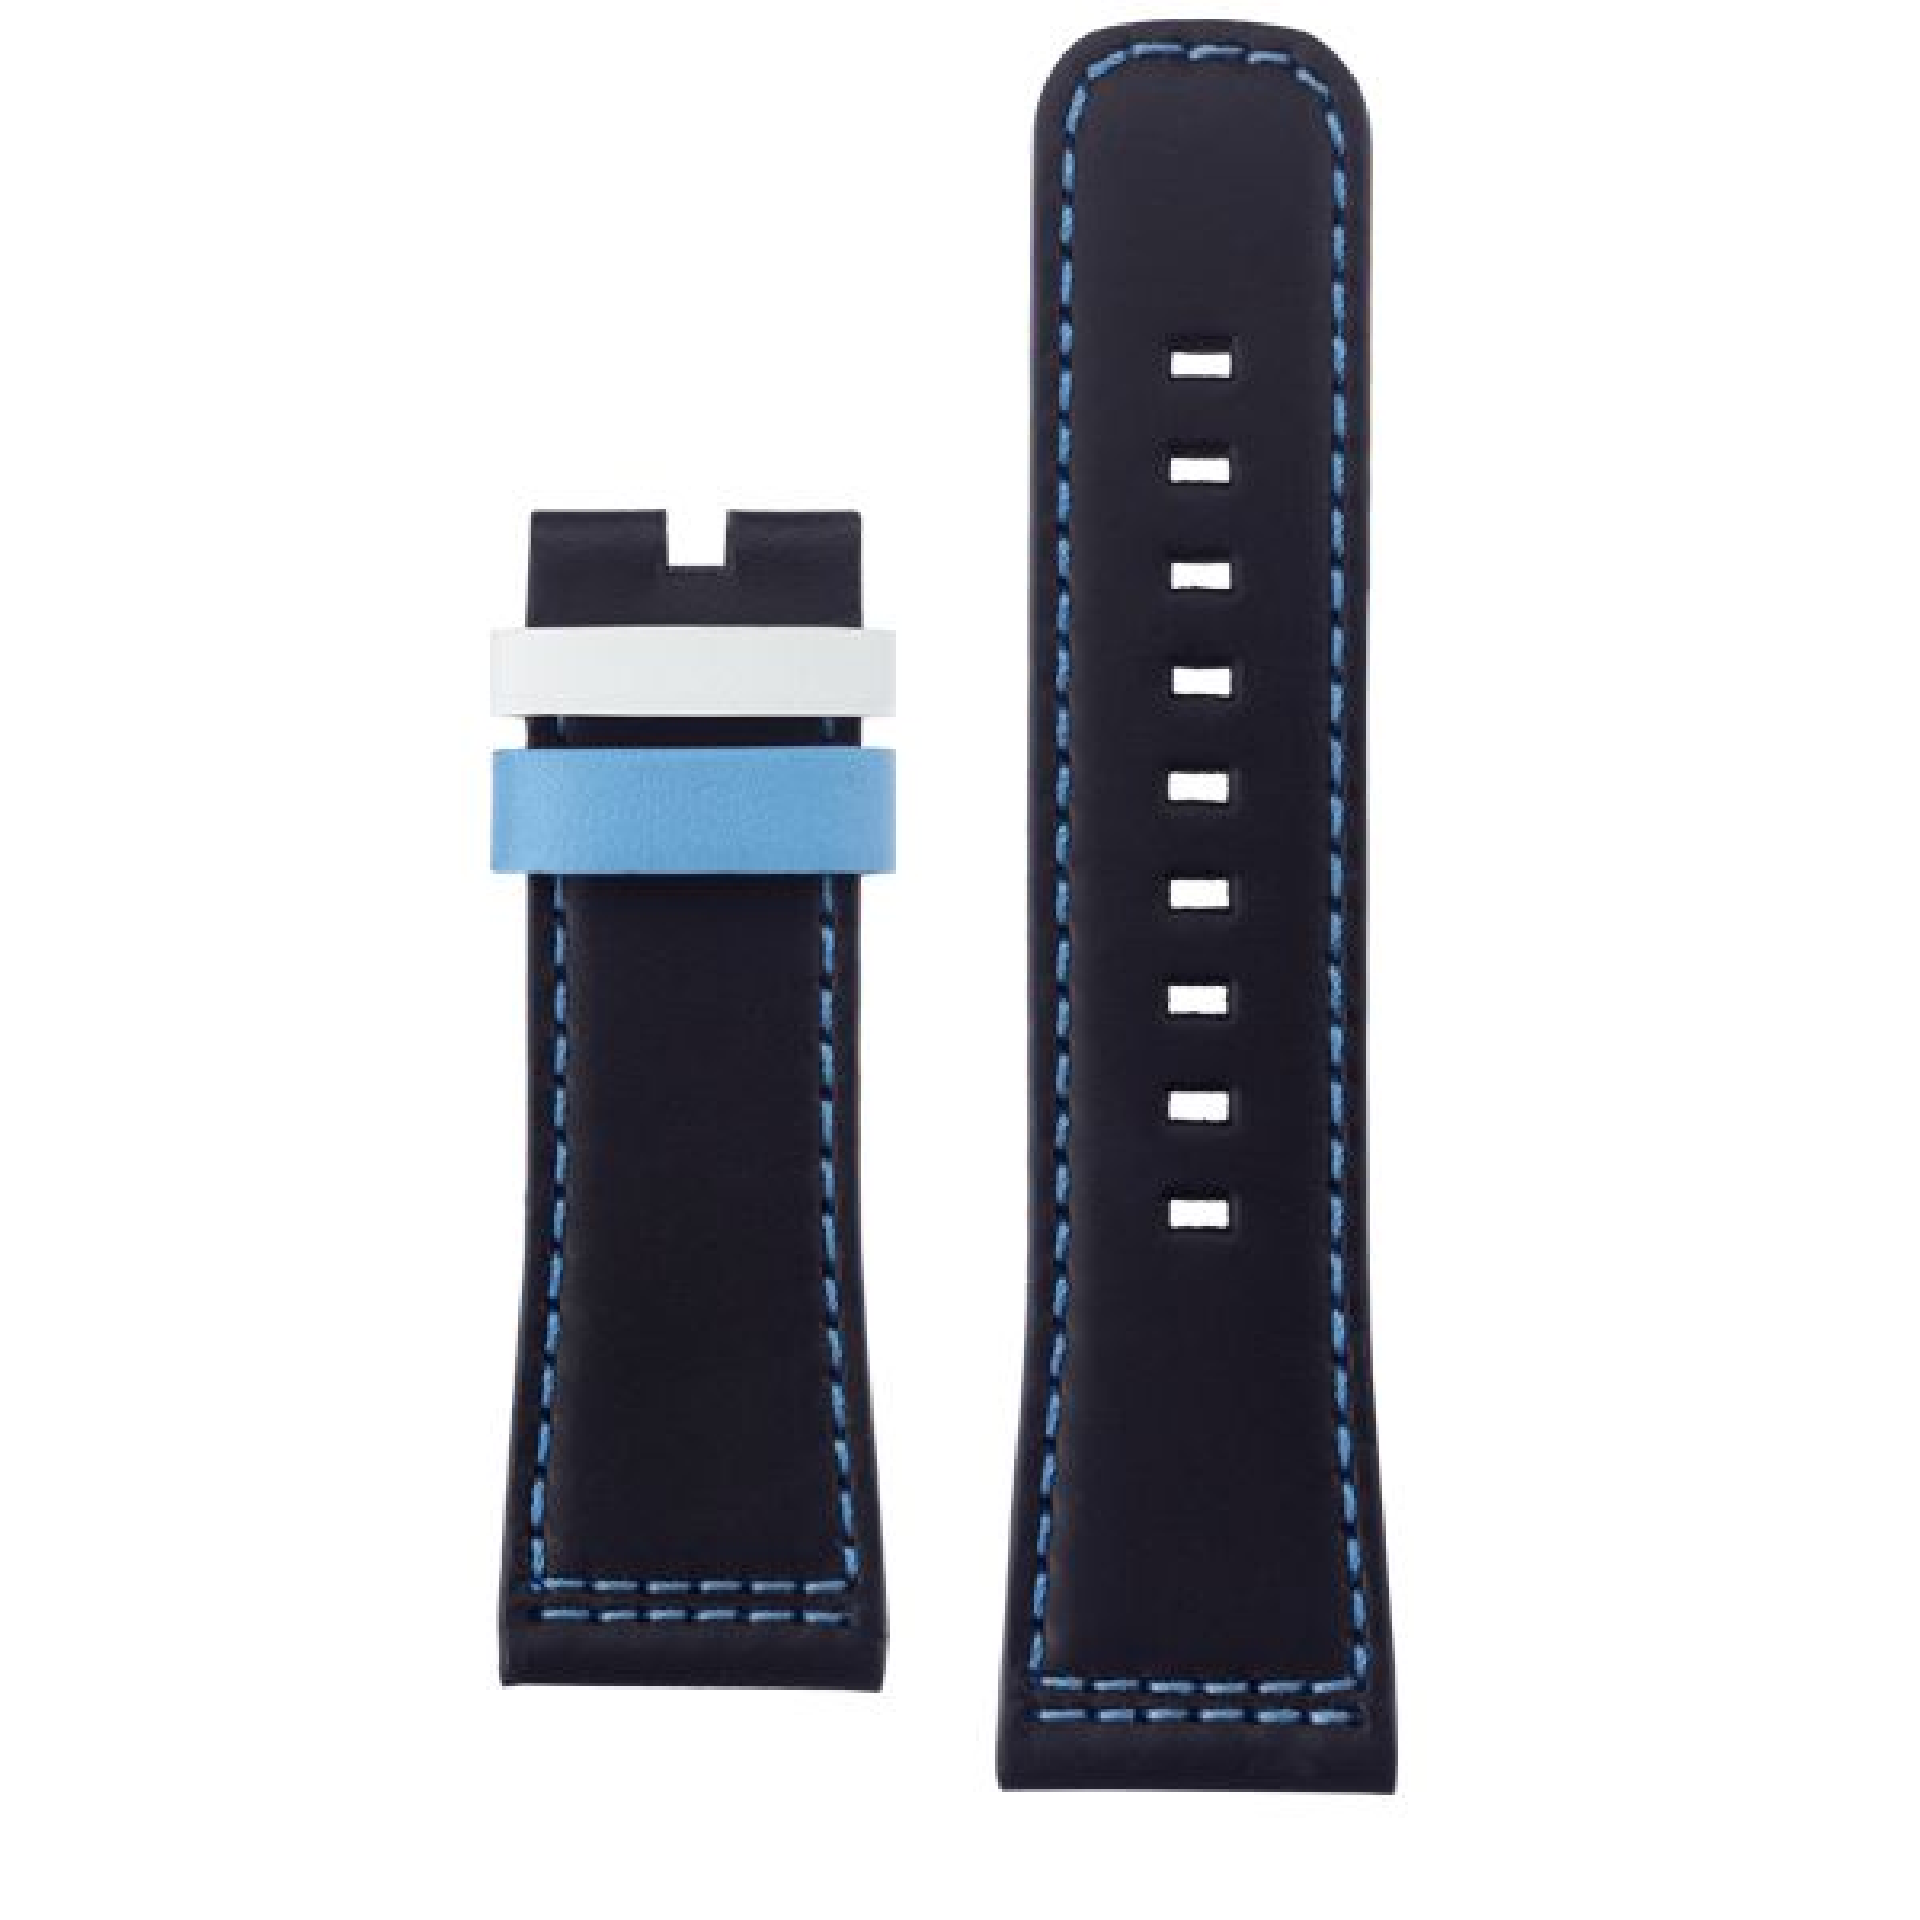 Leather strap black, blue stitching, light blue & white loop